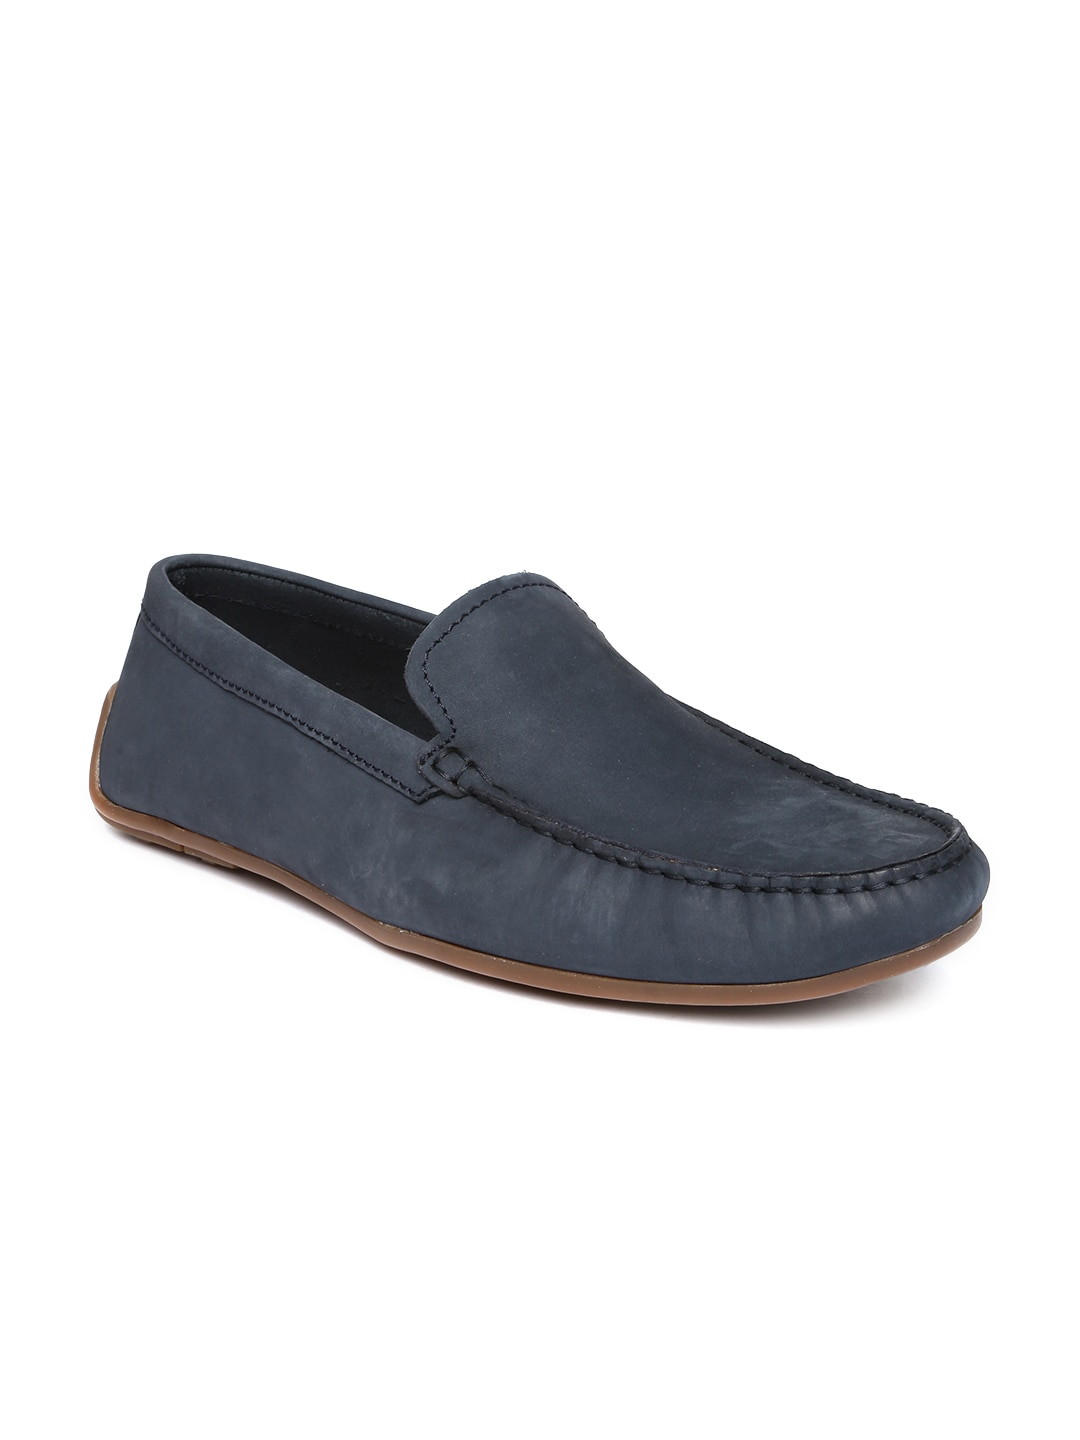 54489056818 Clarks Loafers Men - Buy Clarks Loafers Men online in India